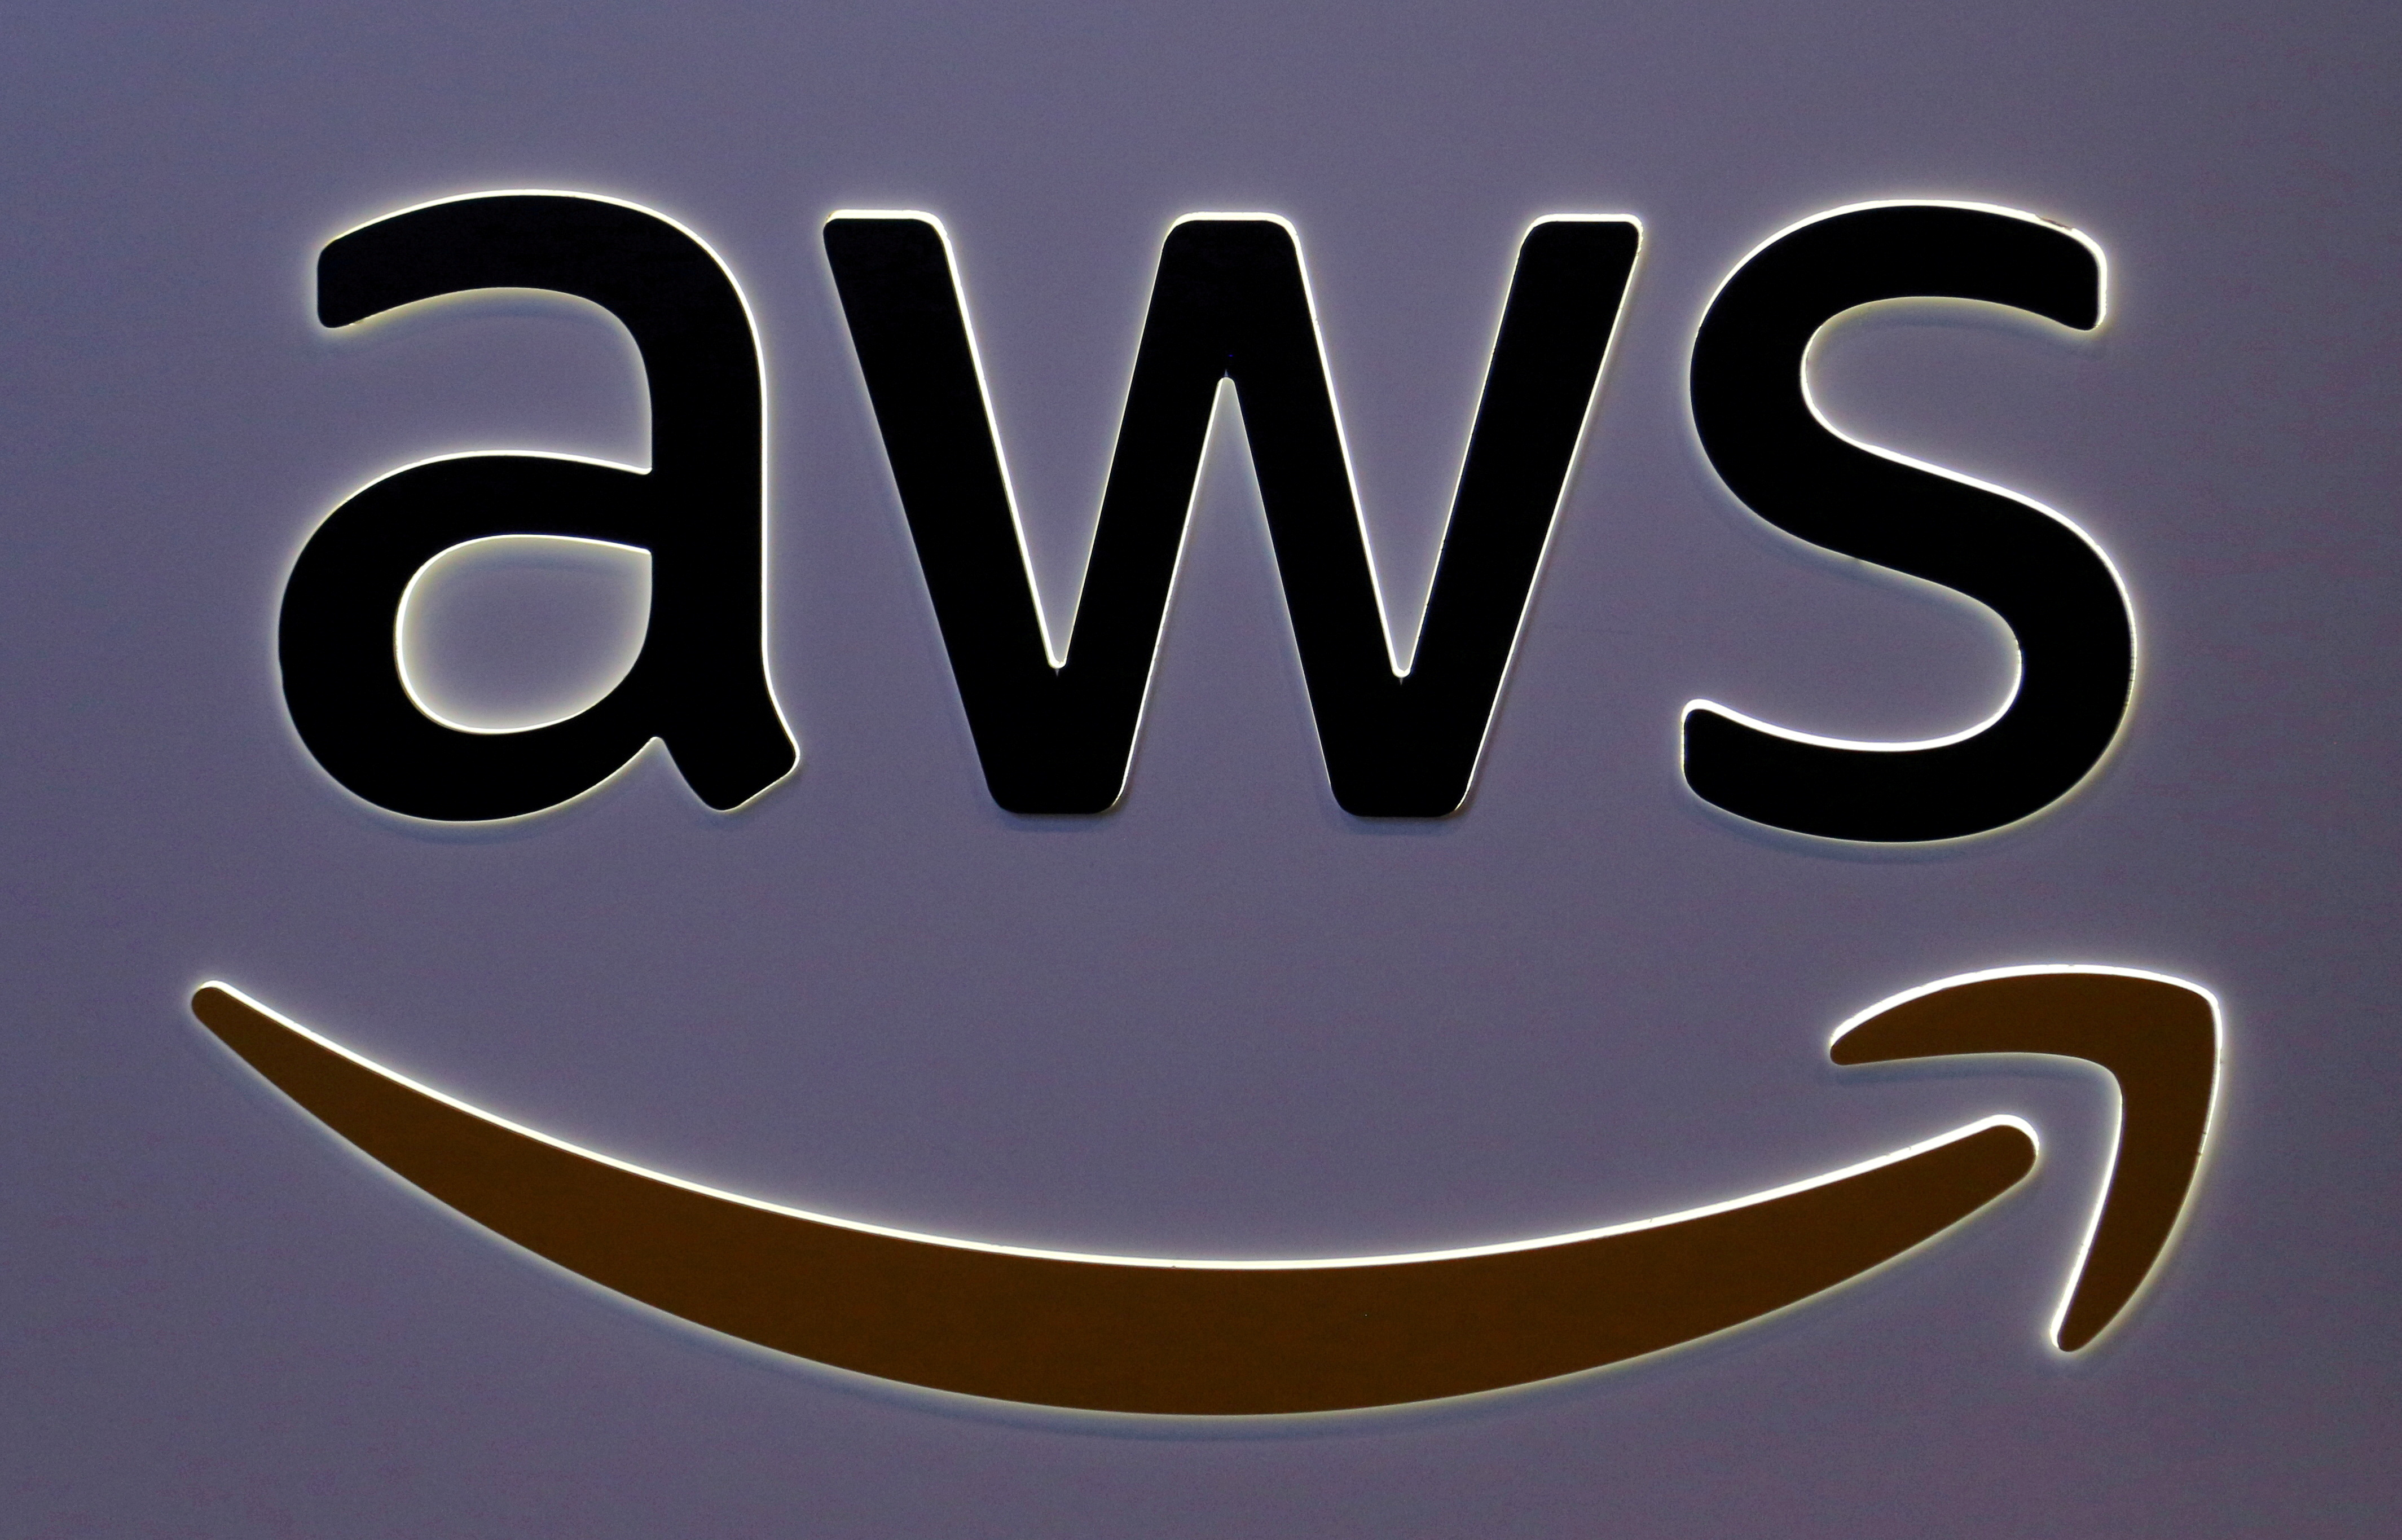 FILE PHOTO: The logo for Amazon Web Services (AWS) is seen at the SIBOS banking and financial conference in Toronto, Ontario, Canada October 19, 2017. REUTERS/Chris Helgren/File Photo